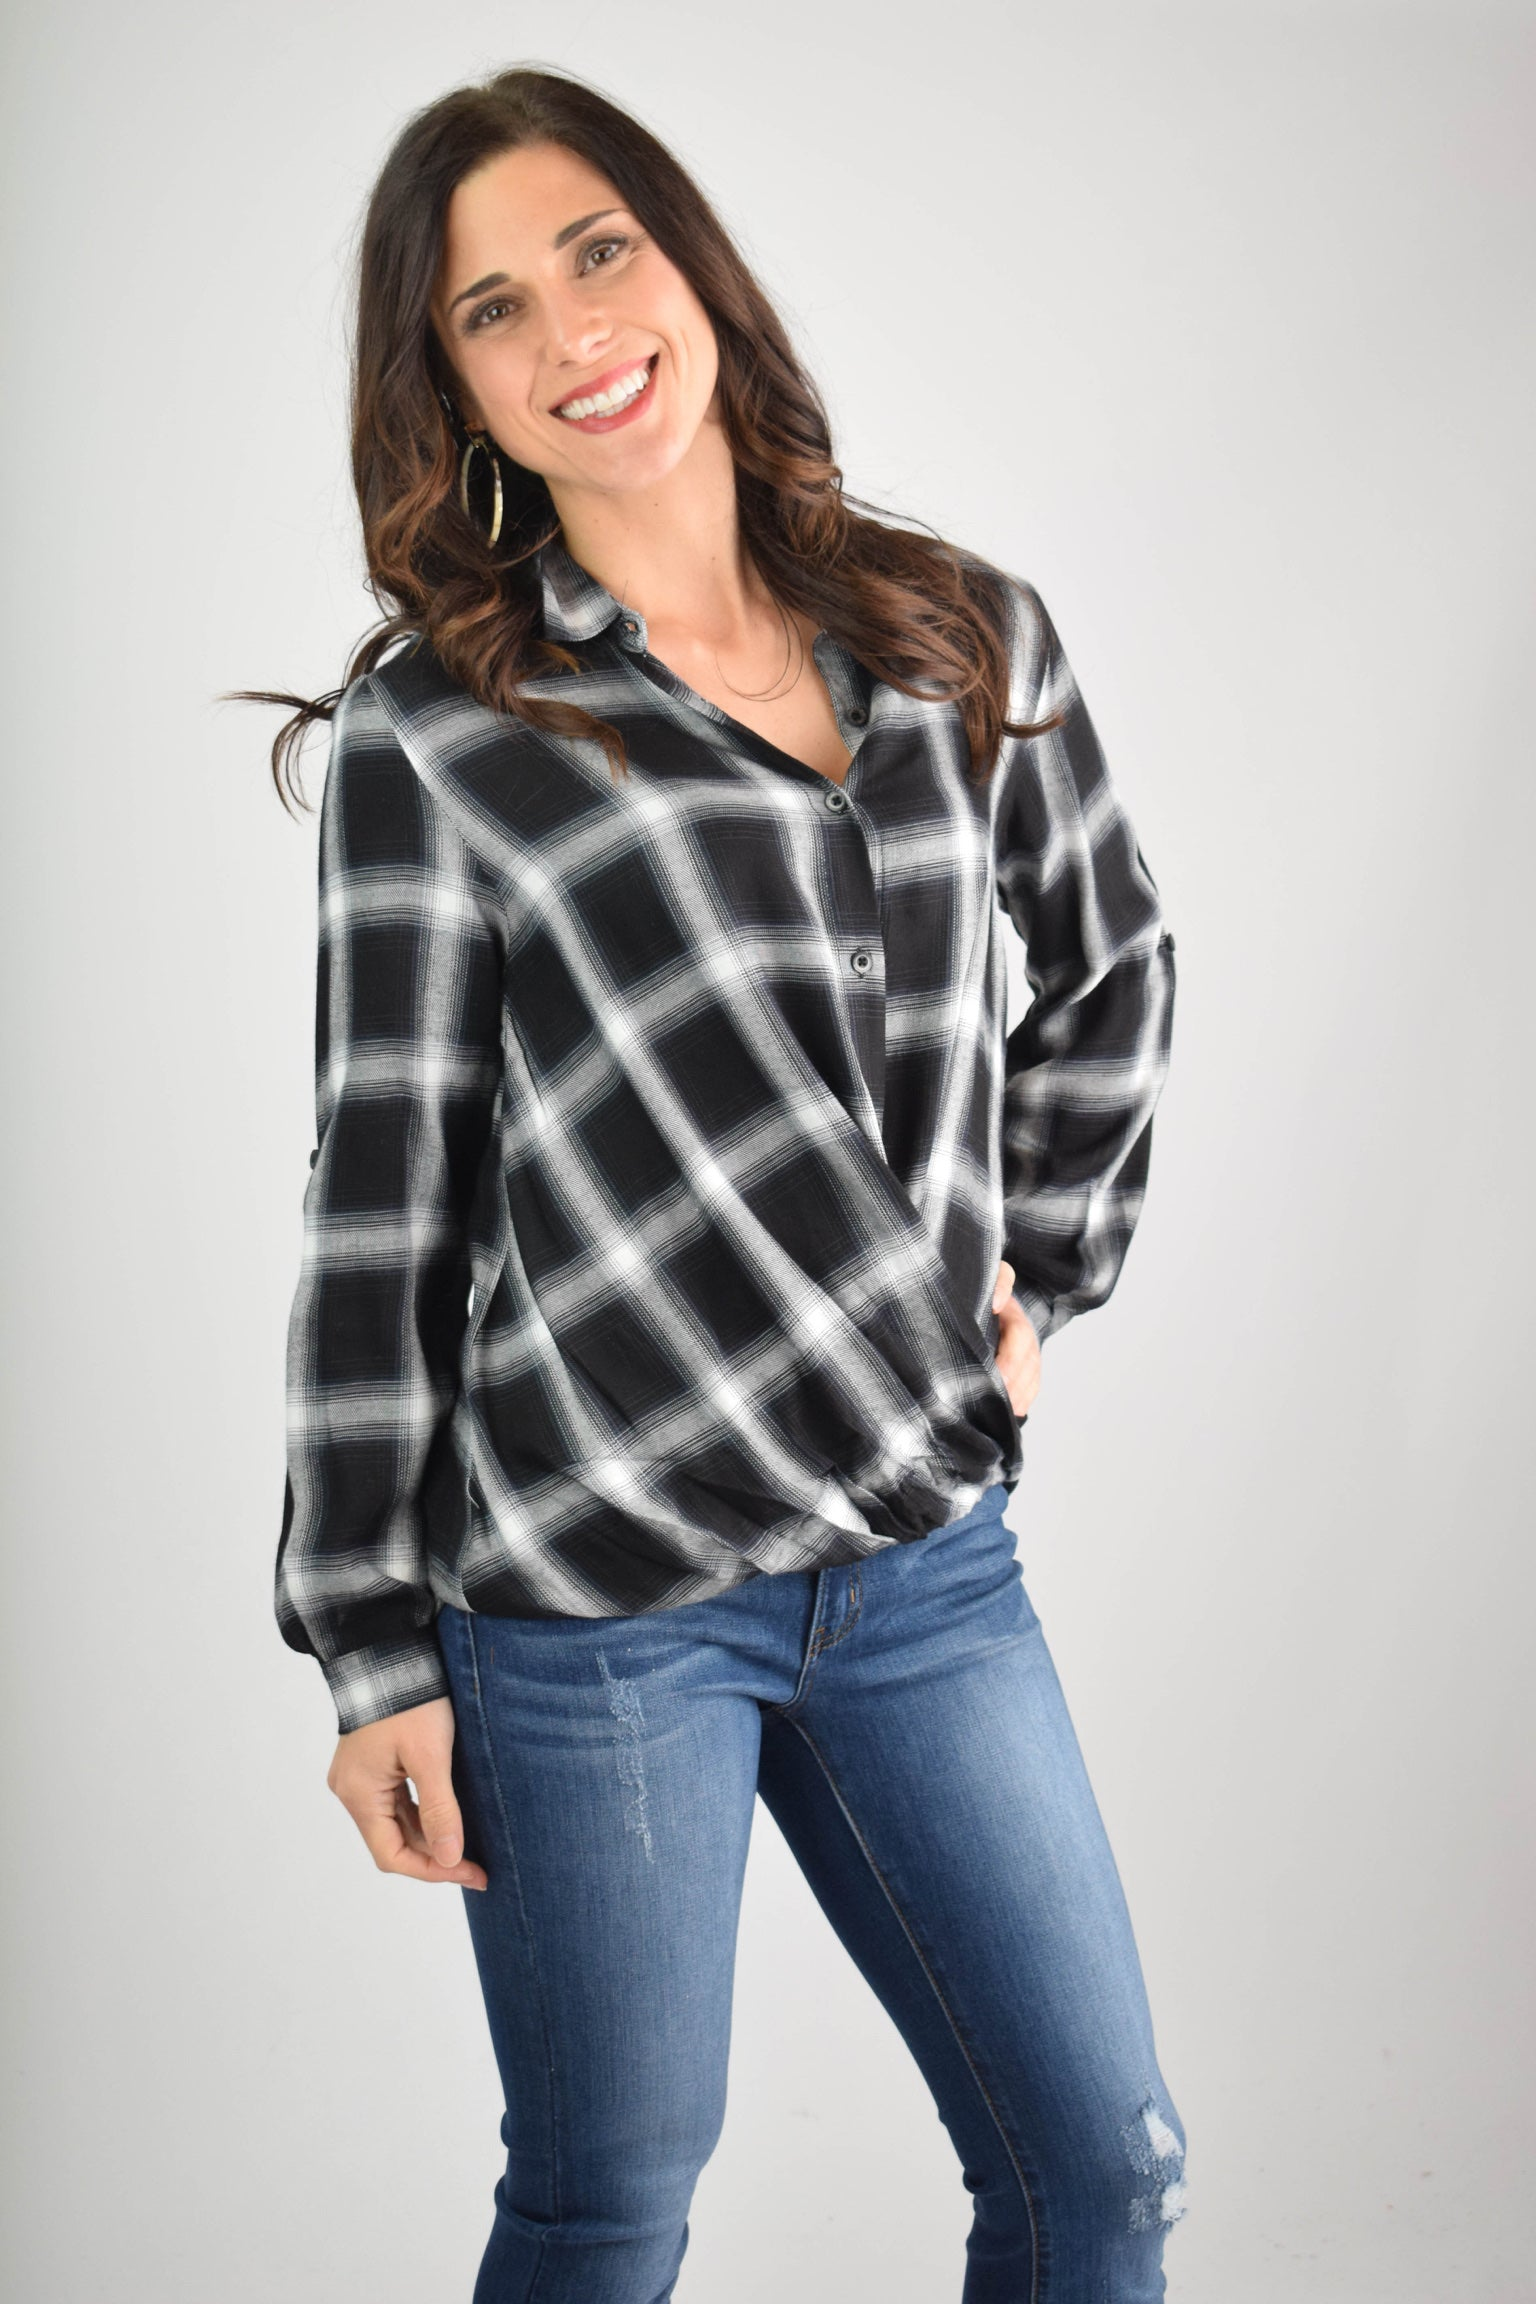 Top Of My Wishlist Black and White Plaid Wrap Top